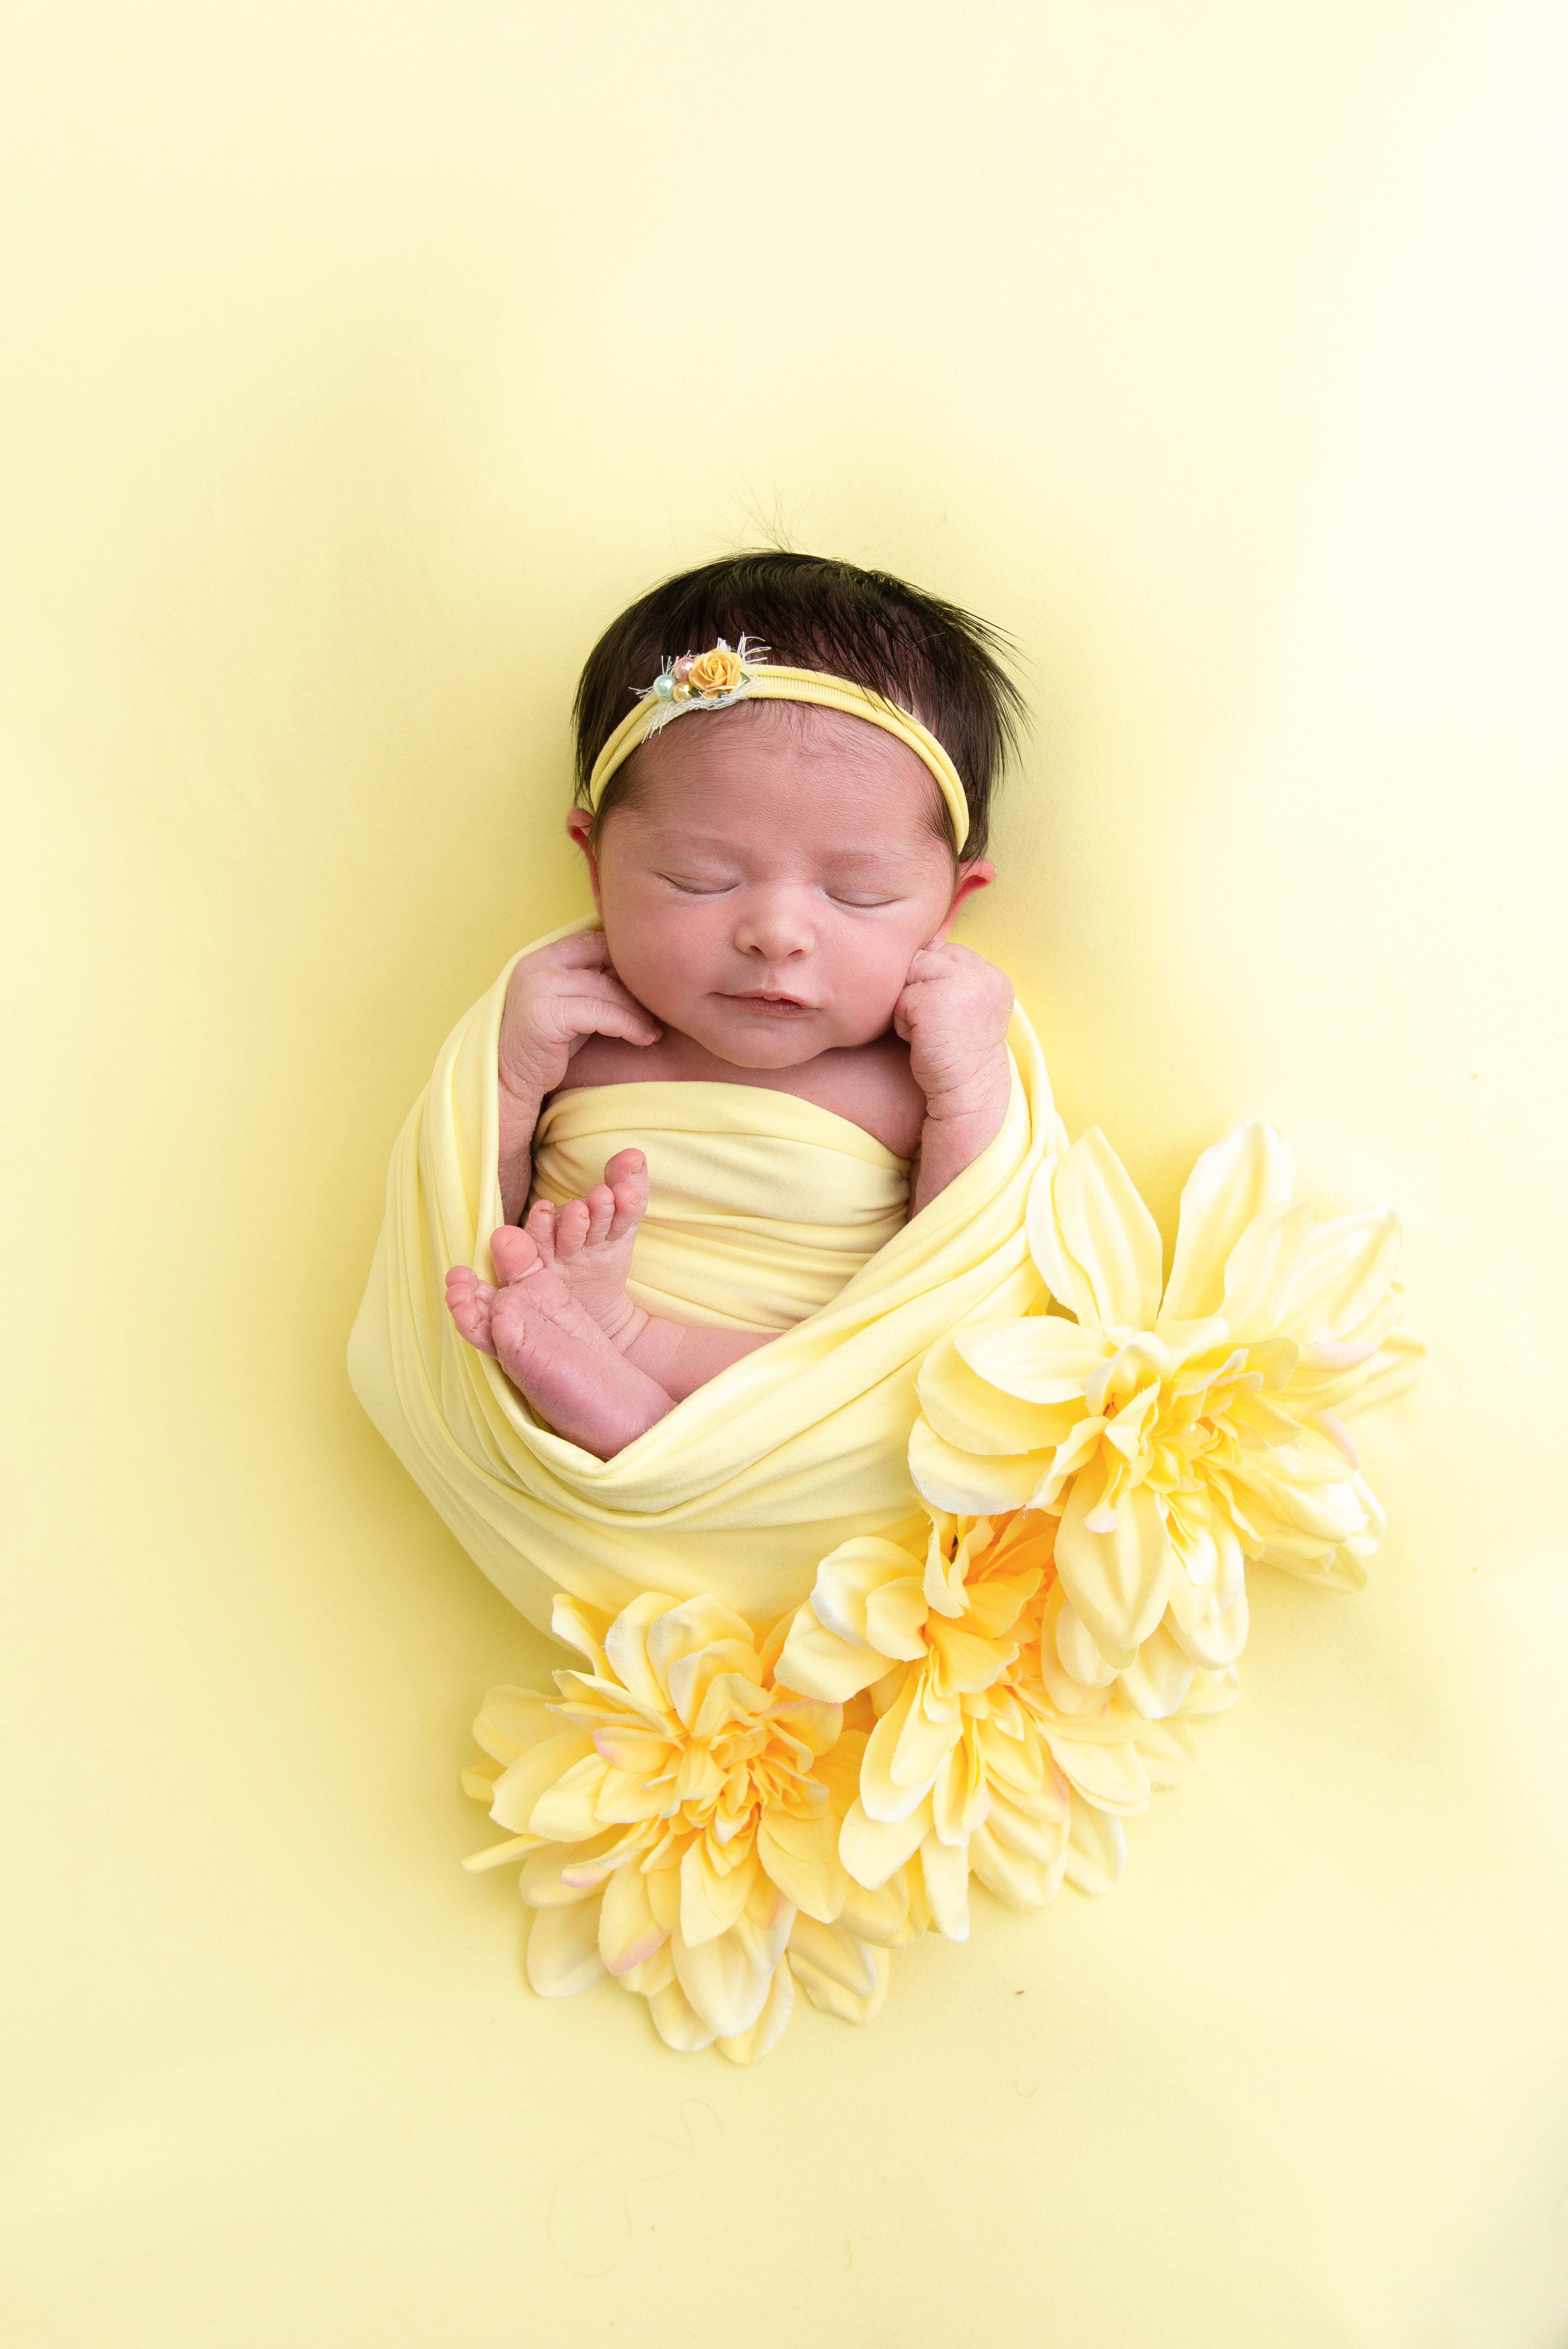 st-louis-newborn-photographer-baby-girl-with-dark-hair-on-yellow-backdrop-with-yellow-flowers.jpg